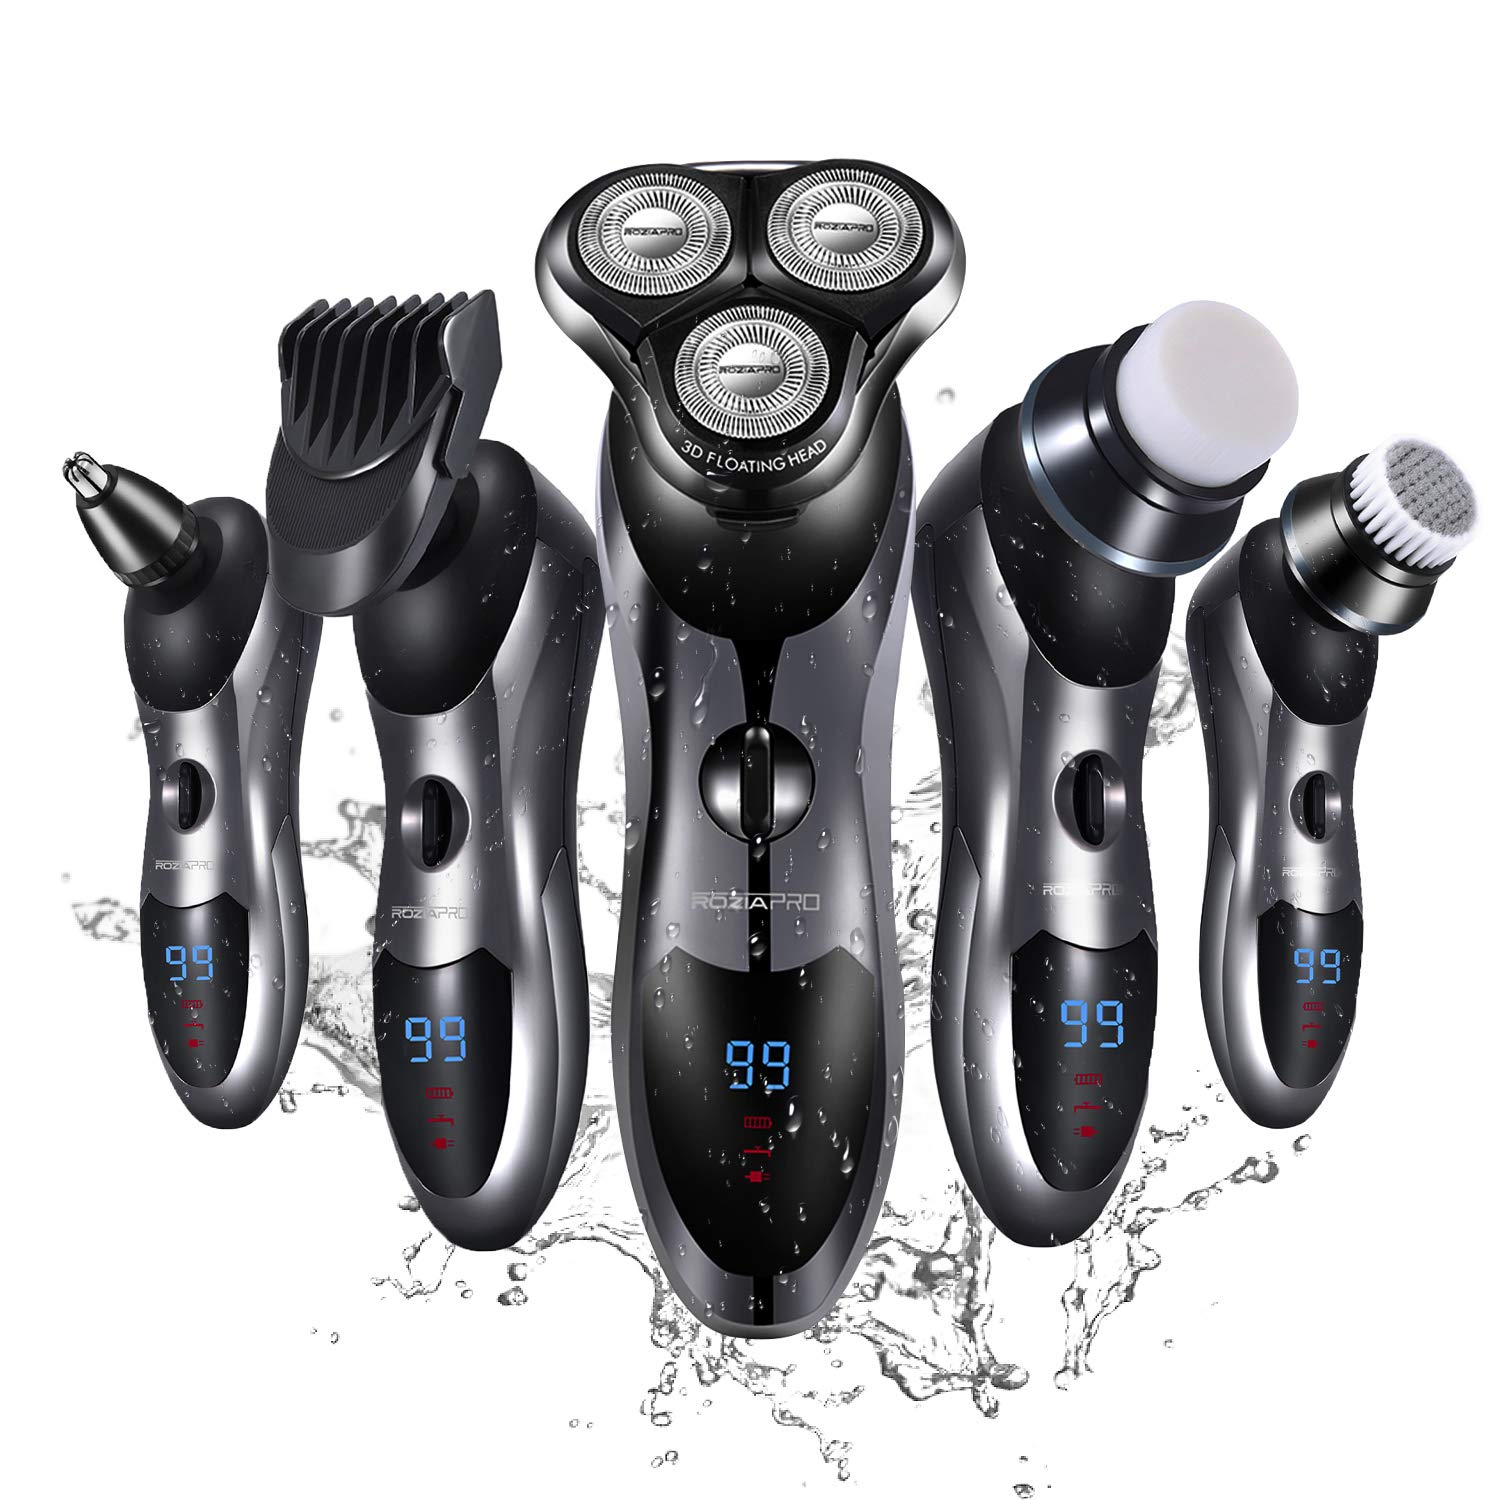 Electric Shaver Razor for Men 5 in 1 Rotary Shavers Beard Trimmer Nose Hair Trimmer Wet and Dry Electric Shavers Men. by Roziapro